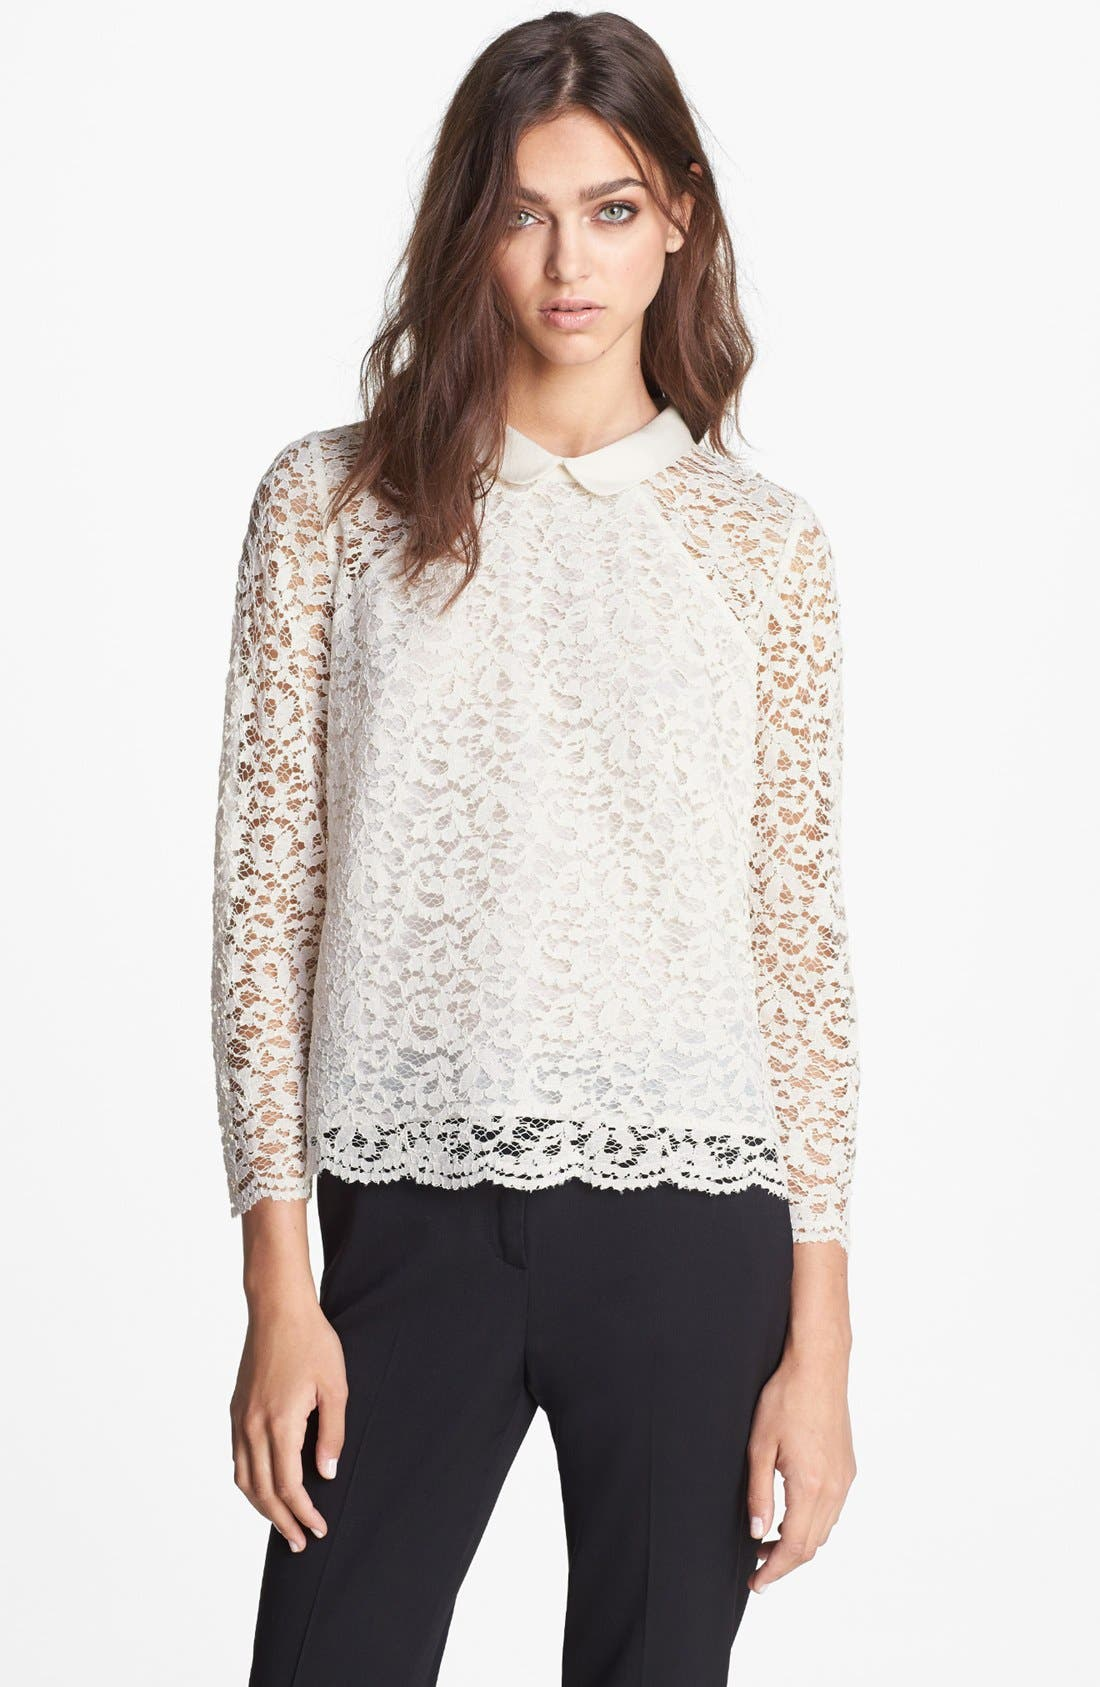 Alternate Image 1 Selected - The Kooples Peter Pan Collar Lace Blouse